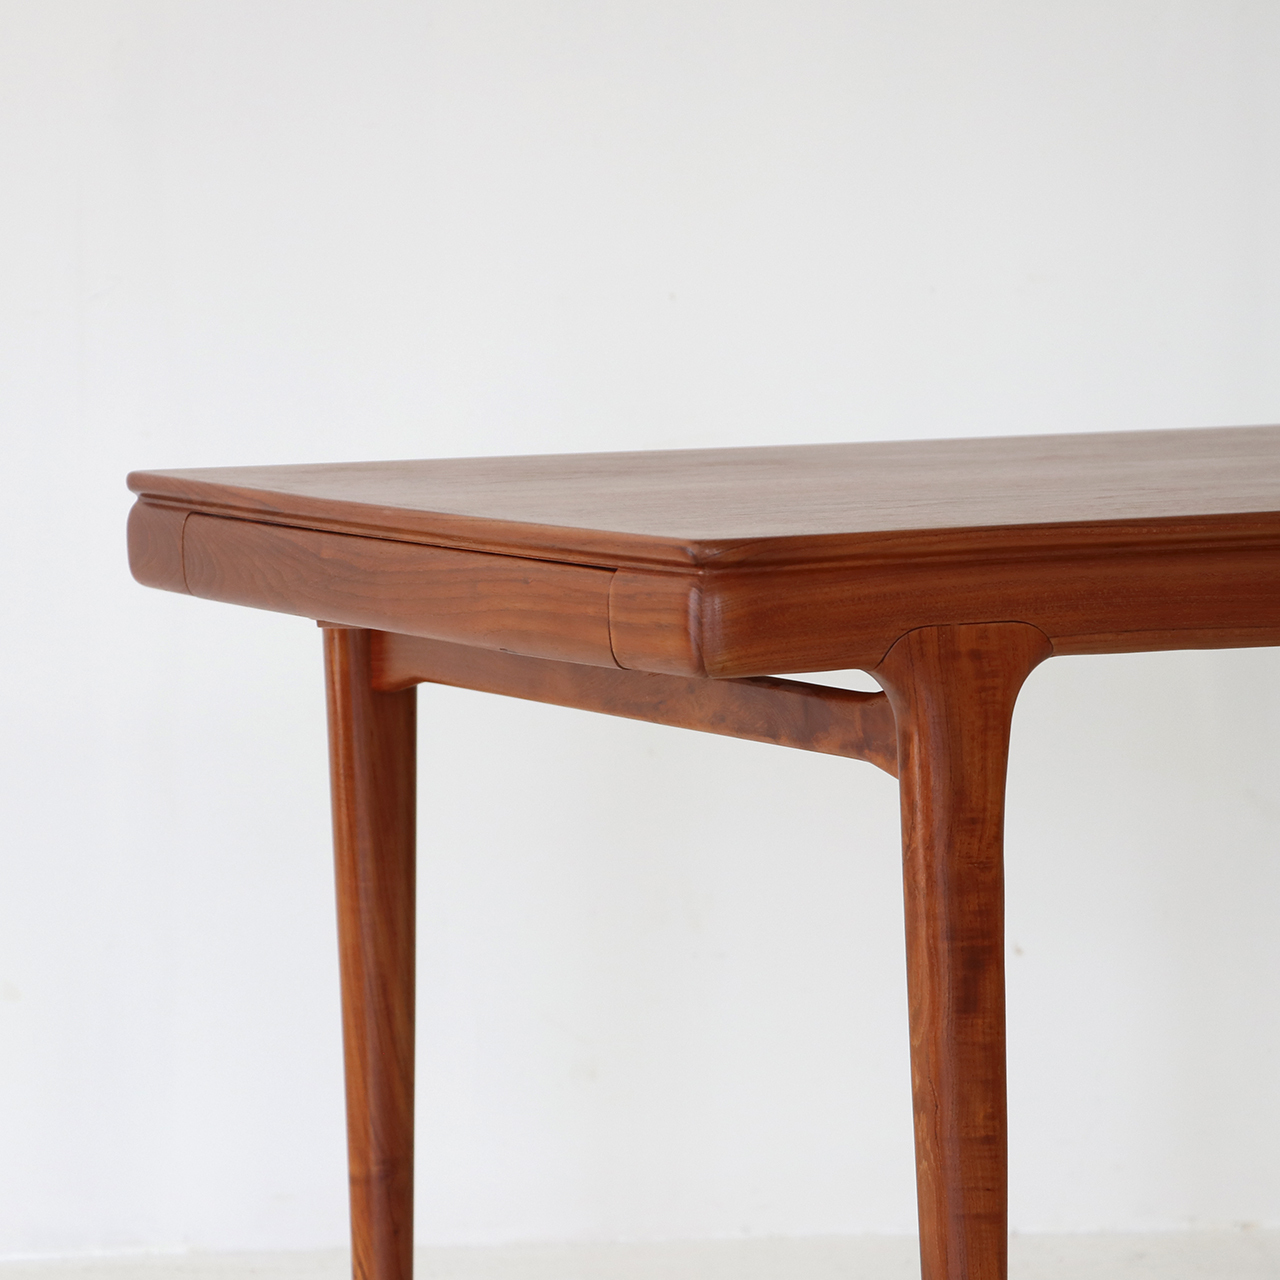 Dining table / Johannes Andersen for Uldum Mobelfabrik